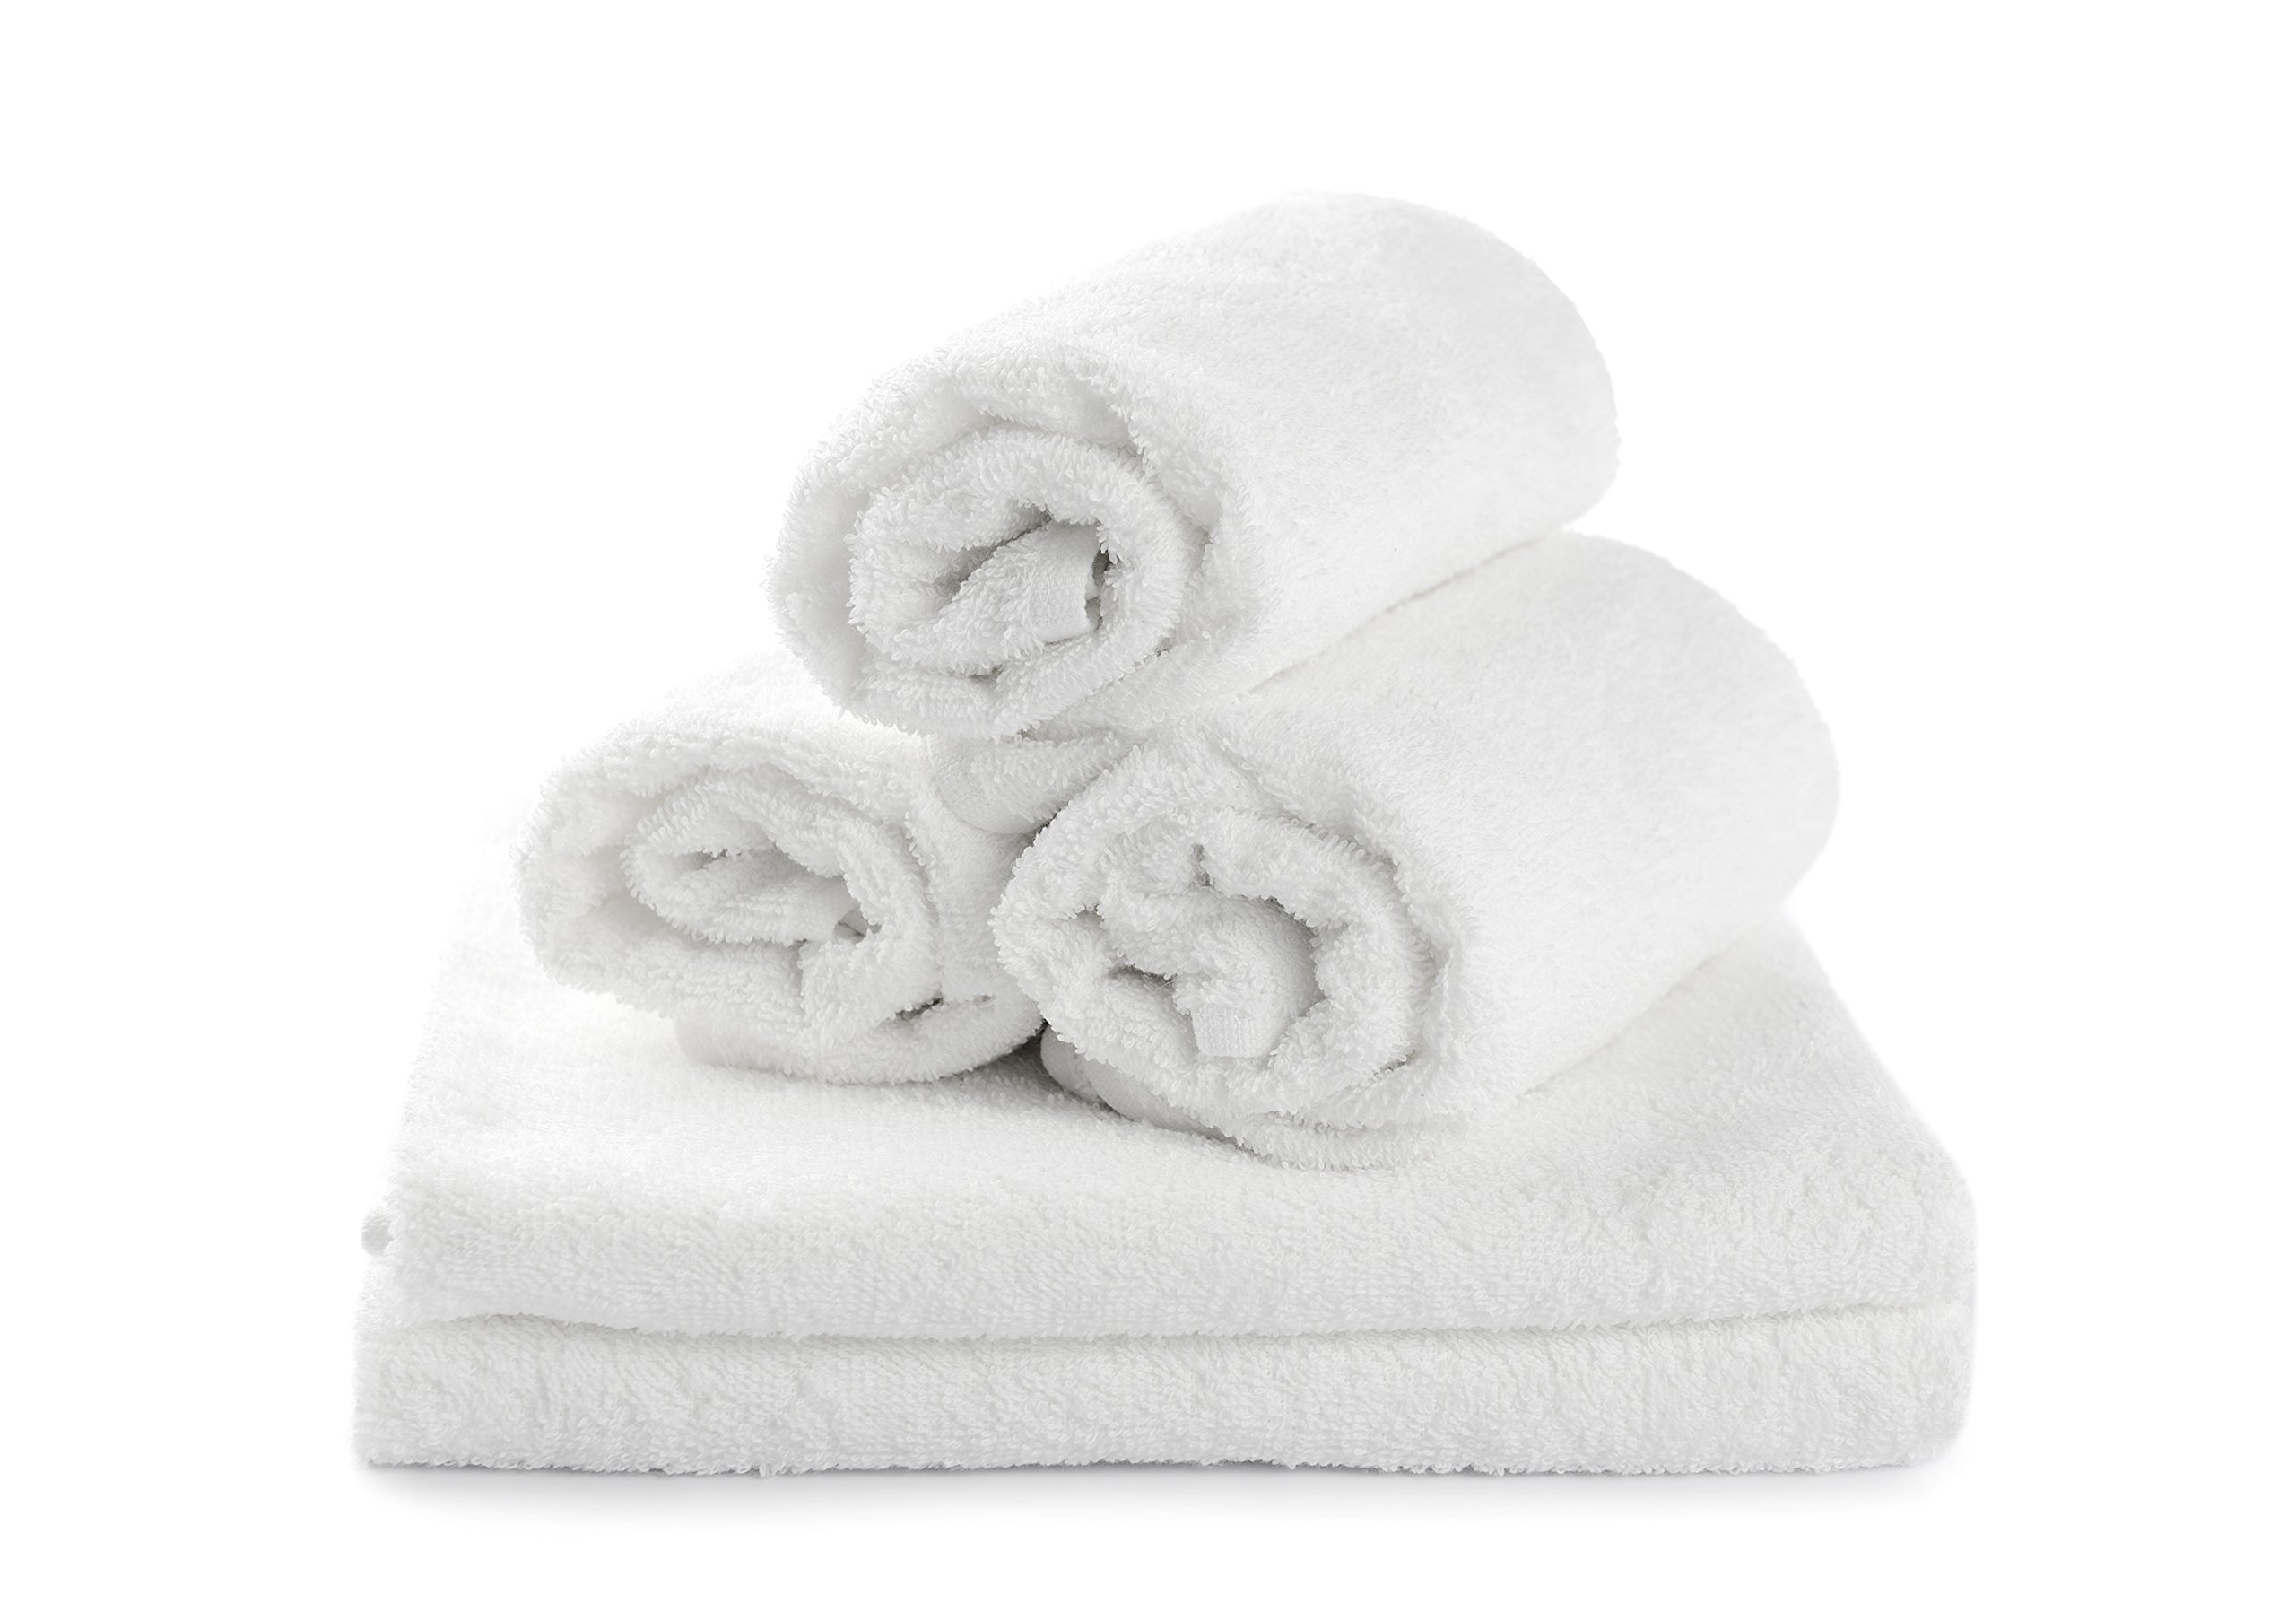 Jmr White Massage Salon 3lbs Hand Towel 16x27 ,12pk